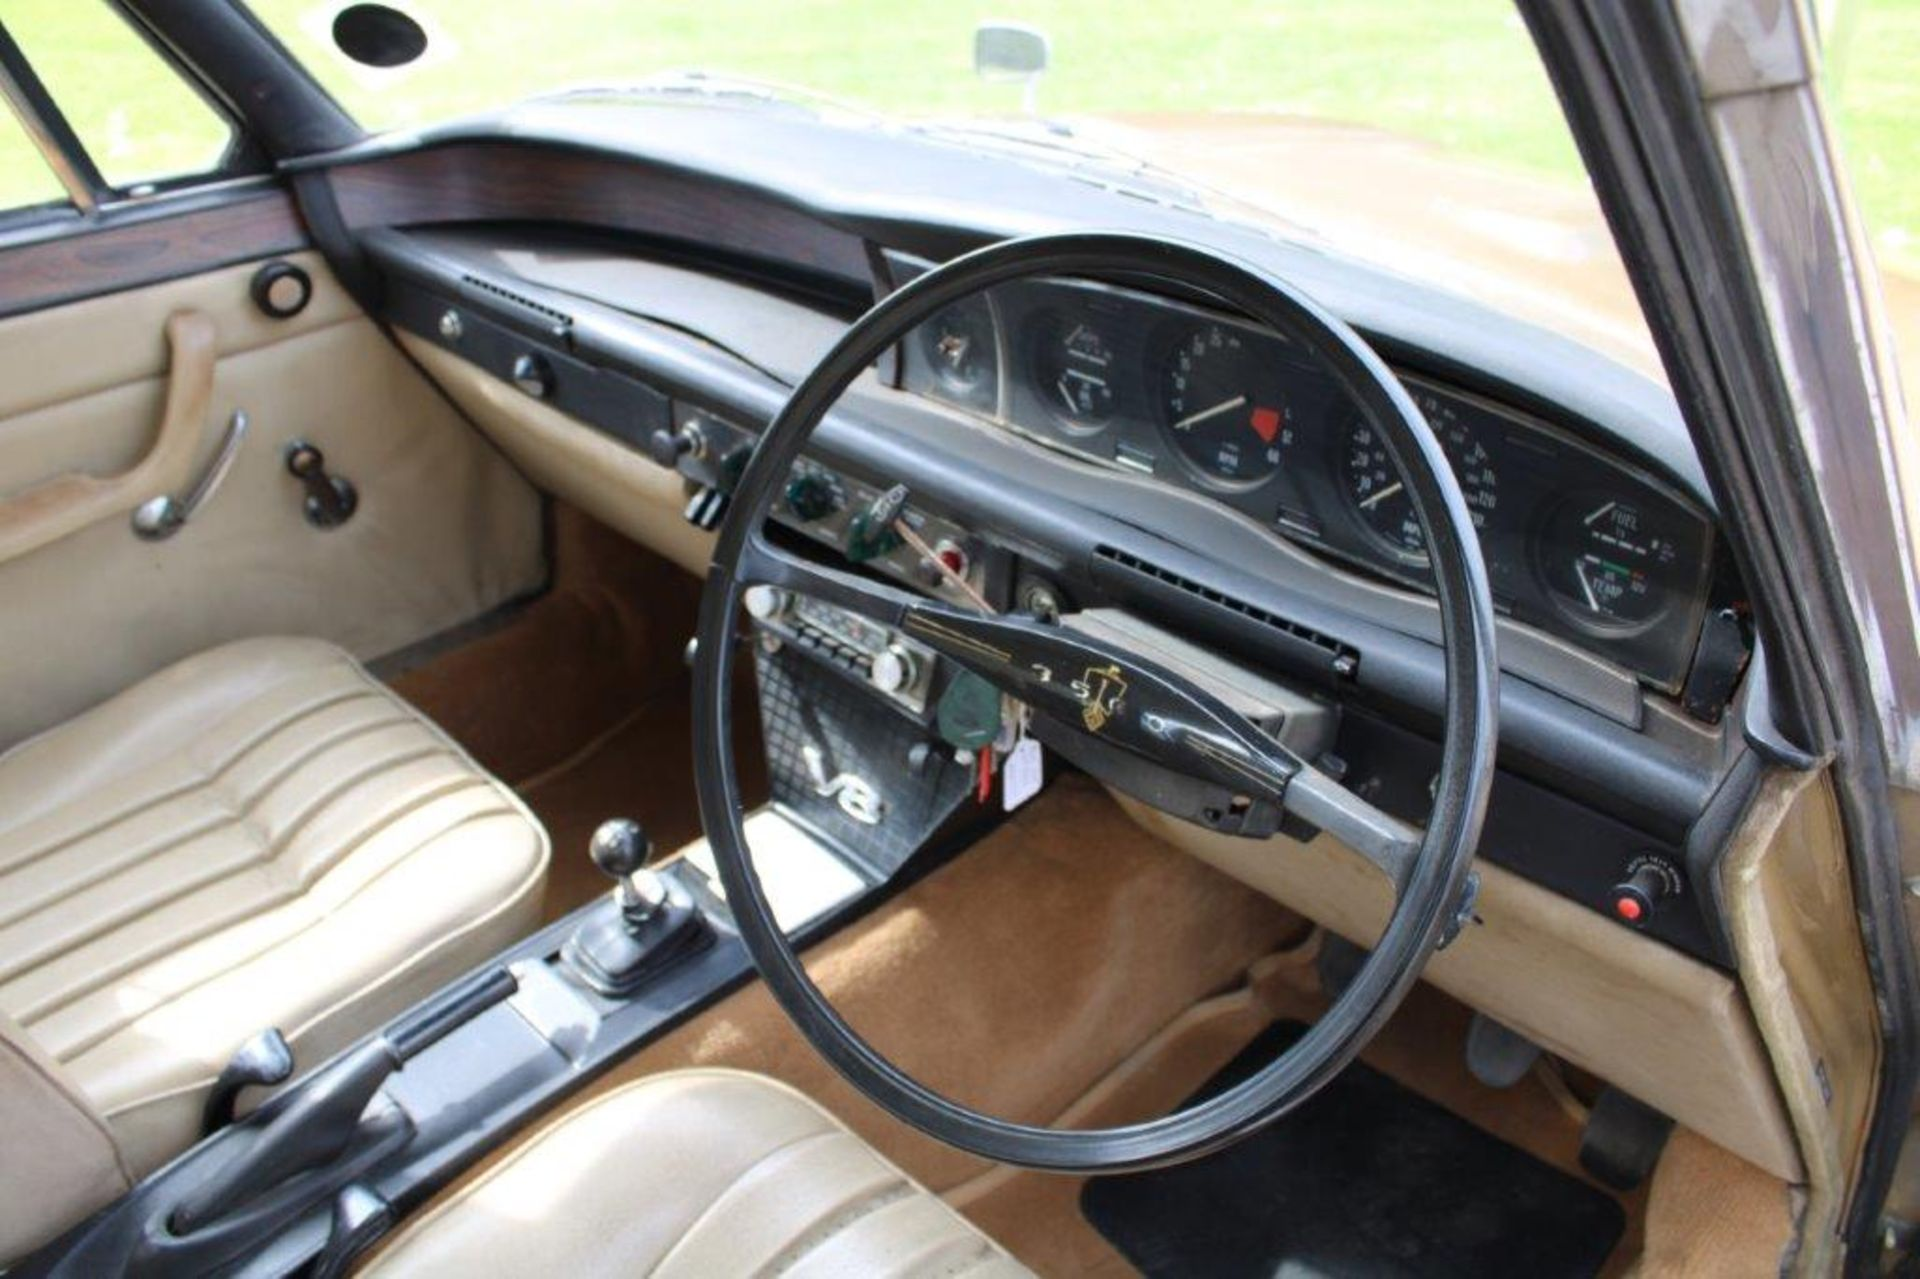 1970 Rover P6 3500 S 1 of 6 development cars - Image 17 of 21